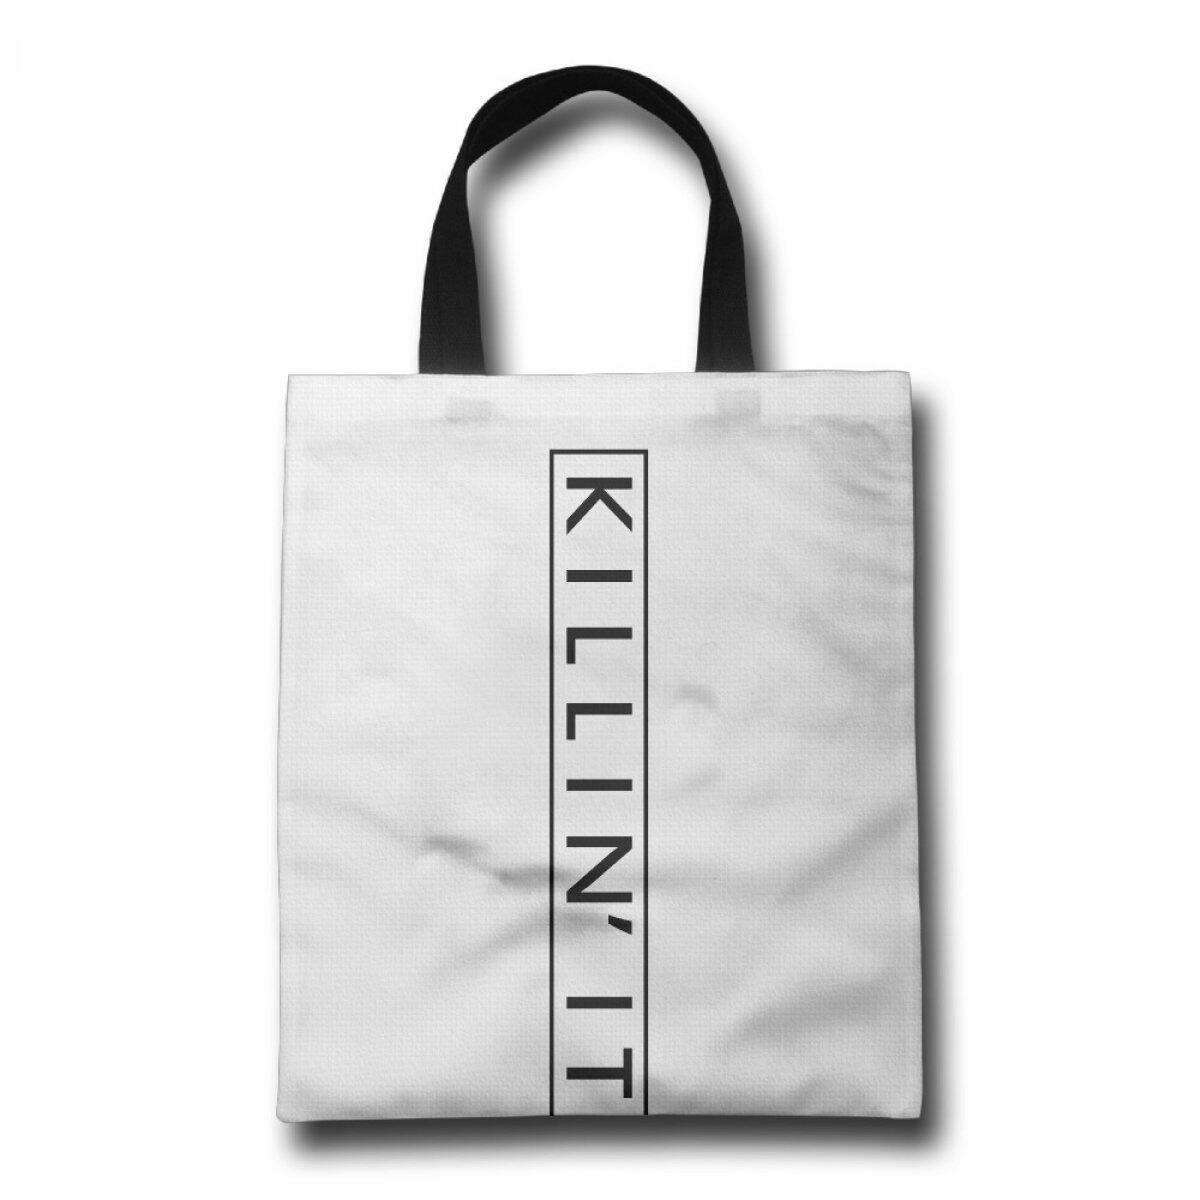 PhoRock Ladies Beach Tote Killin It Printed Canvas Tote Bag GWGX007 0